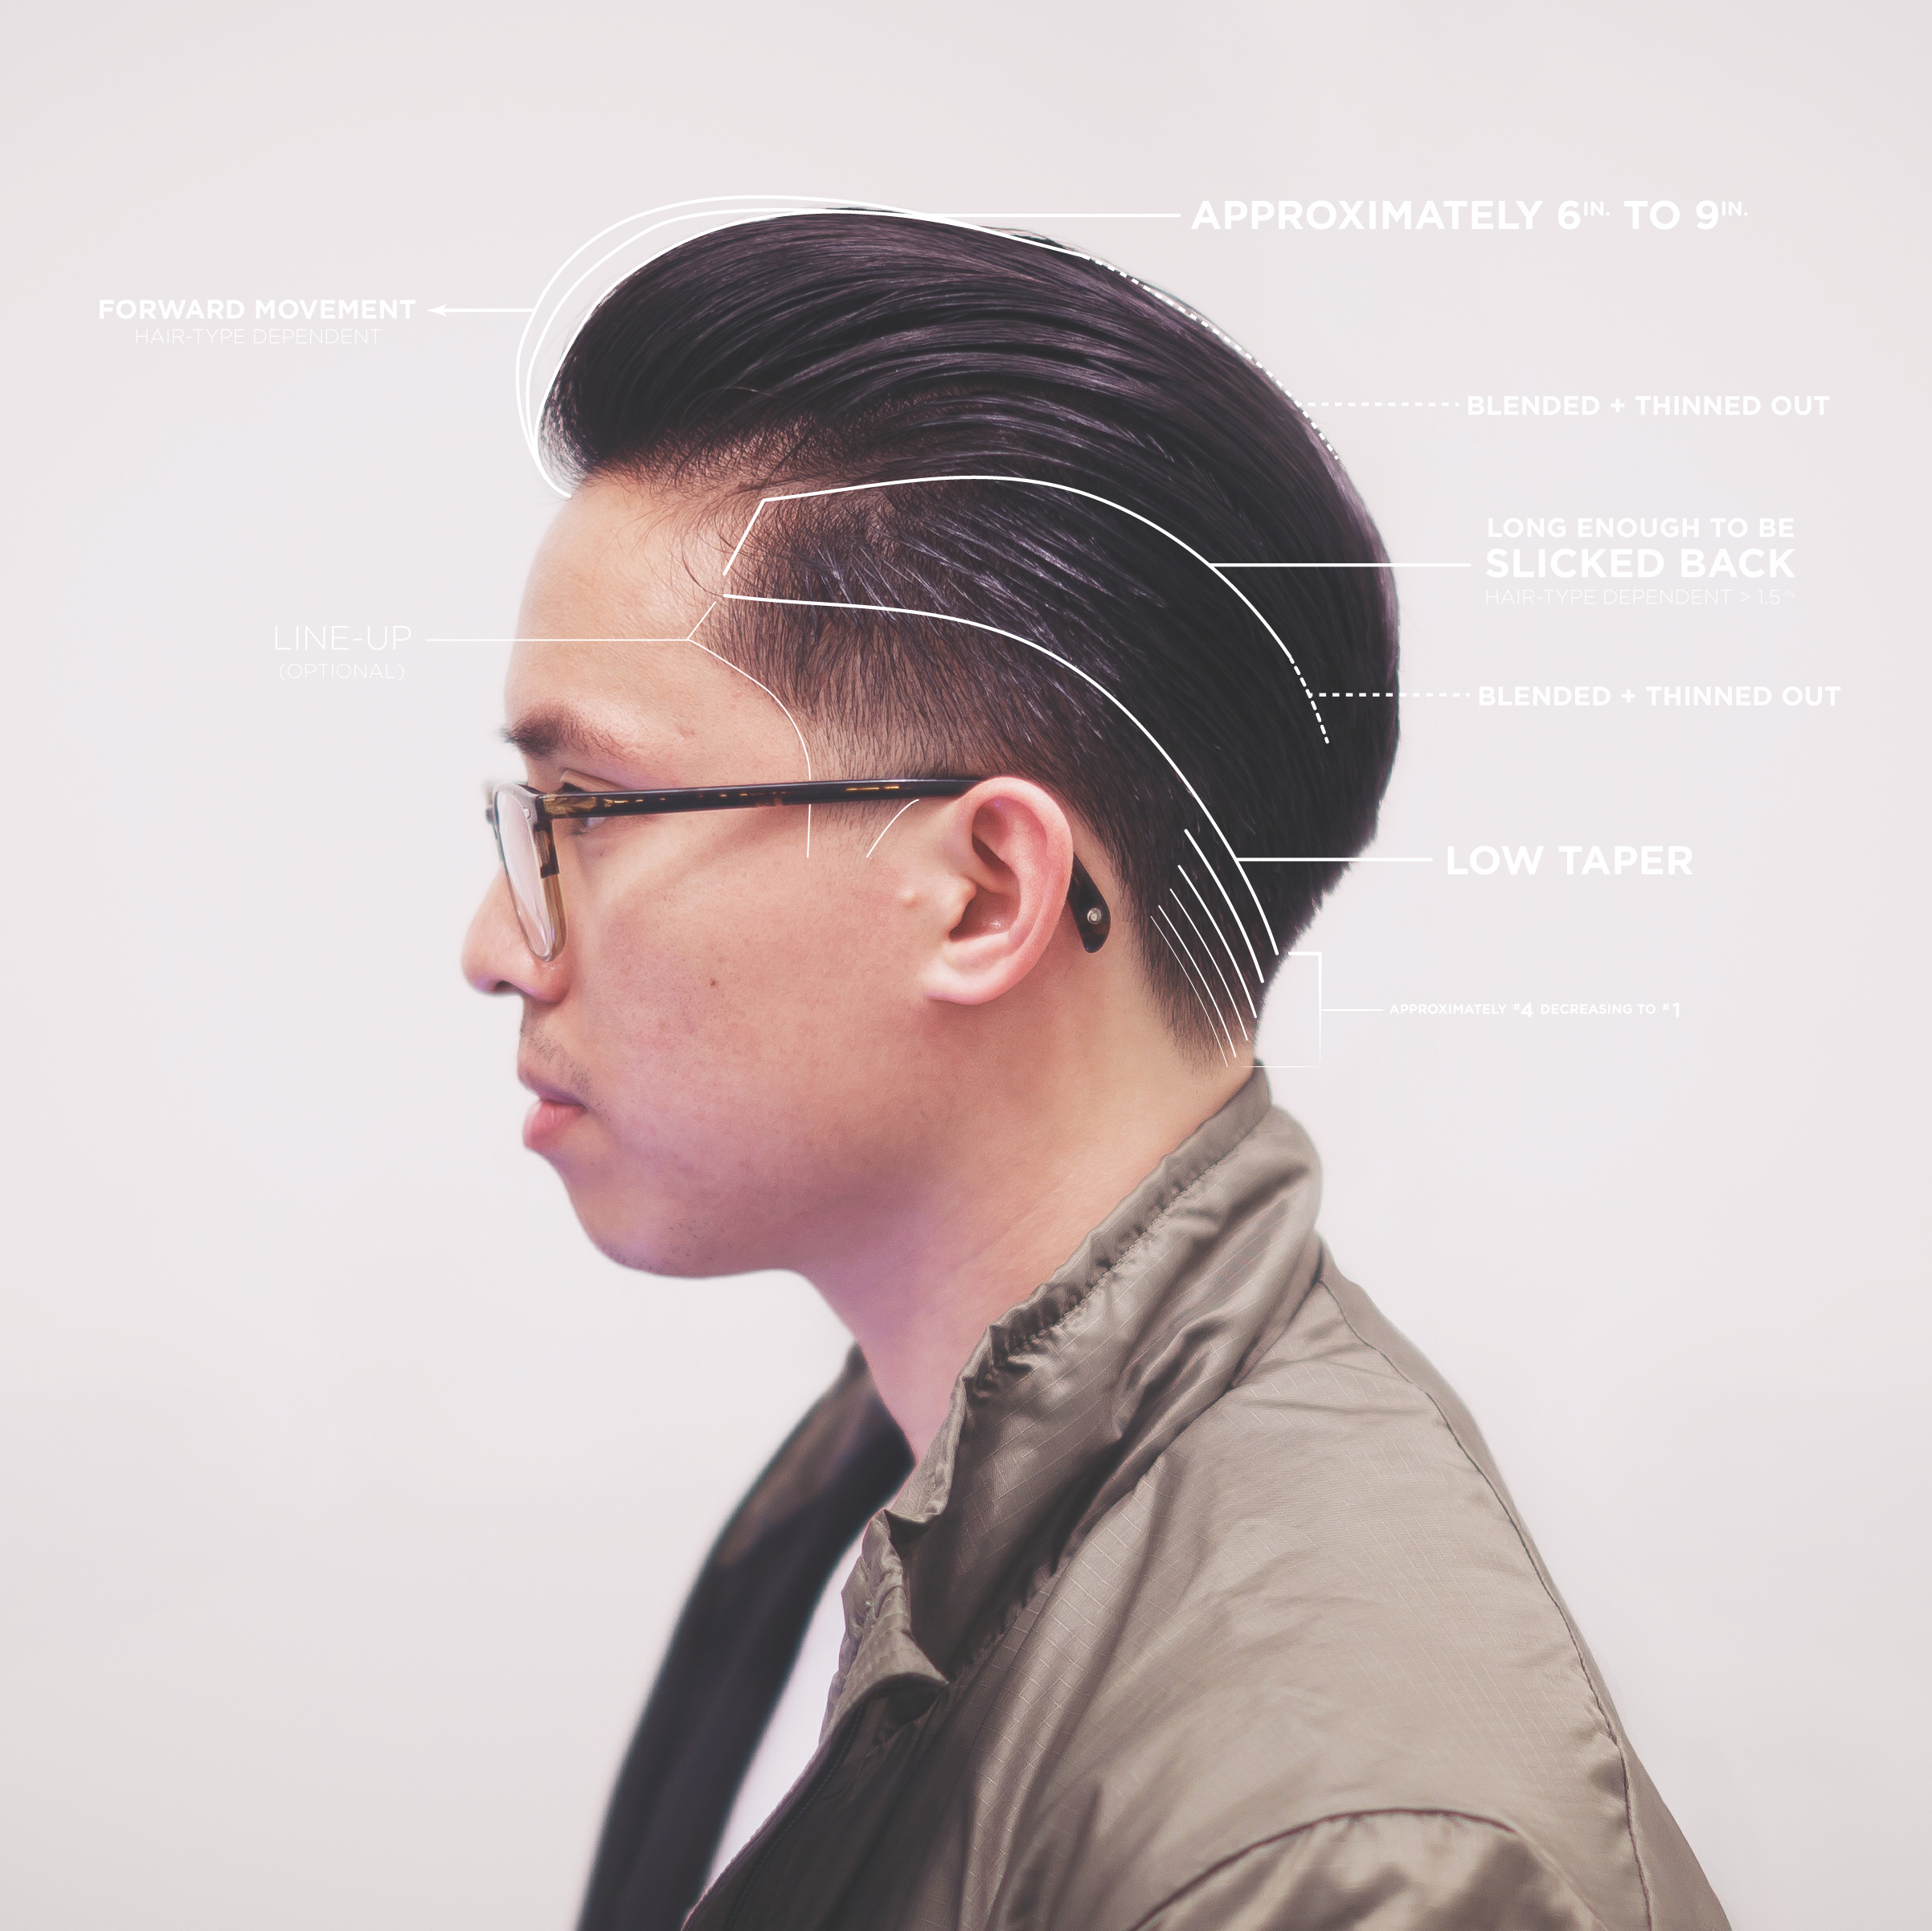 What to ask for at the barbershop? ThePomp Low Taper Pompadour Pomp Pomade Haircut Hairstyle Barber Cut Hair Style Dimension Specifications Murray's Suavecito Layrite